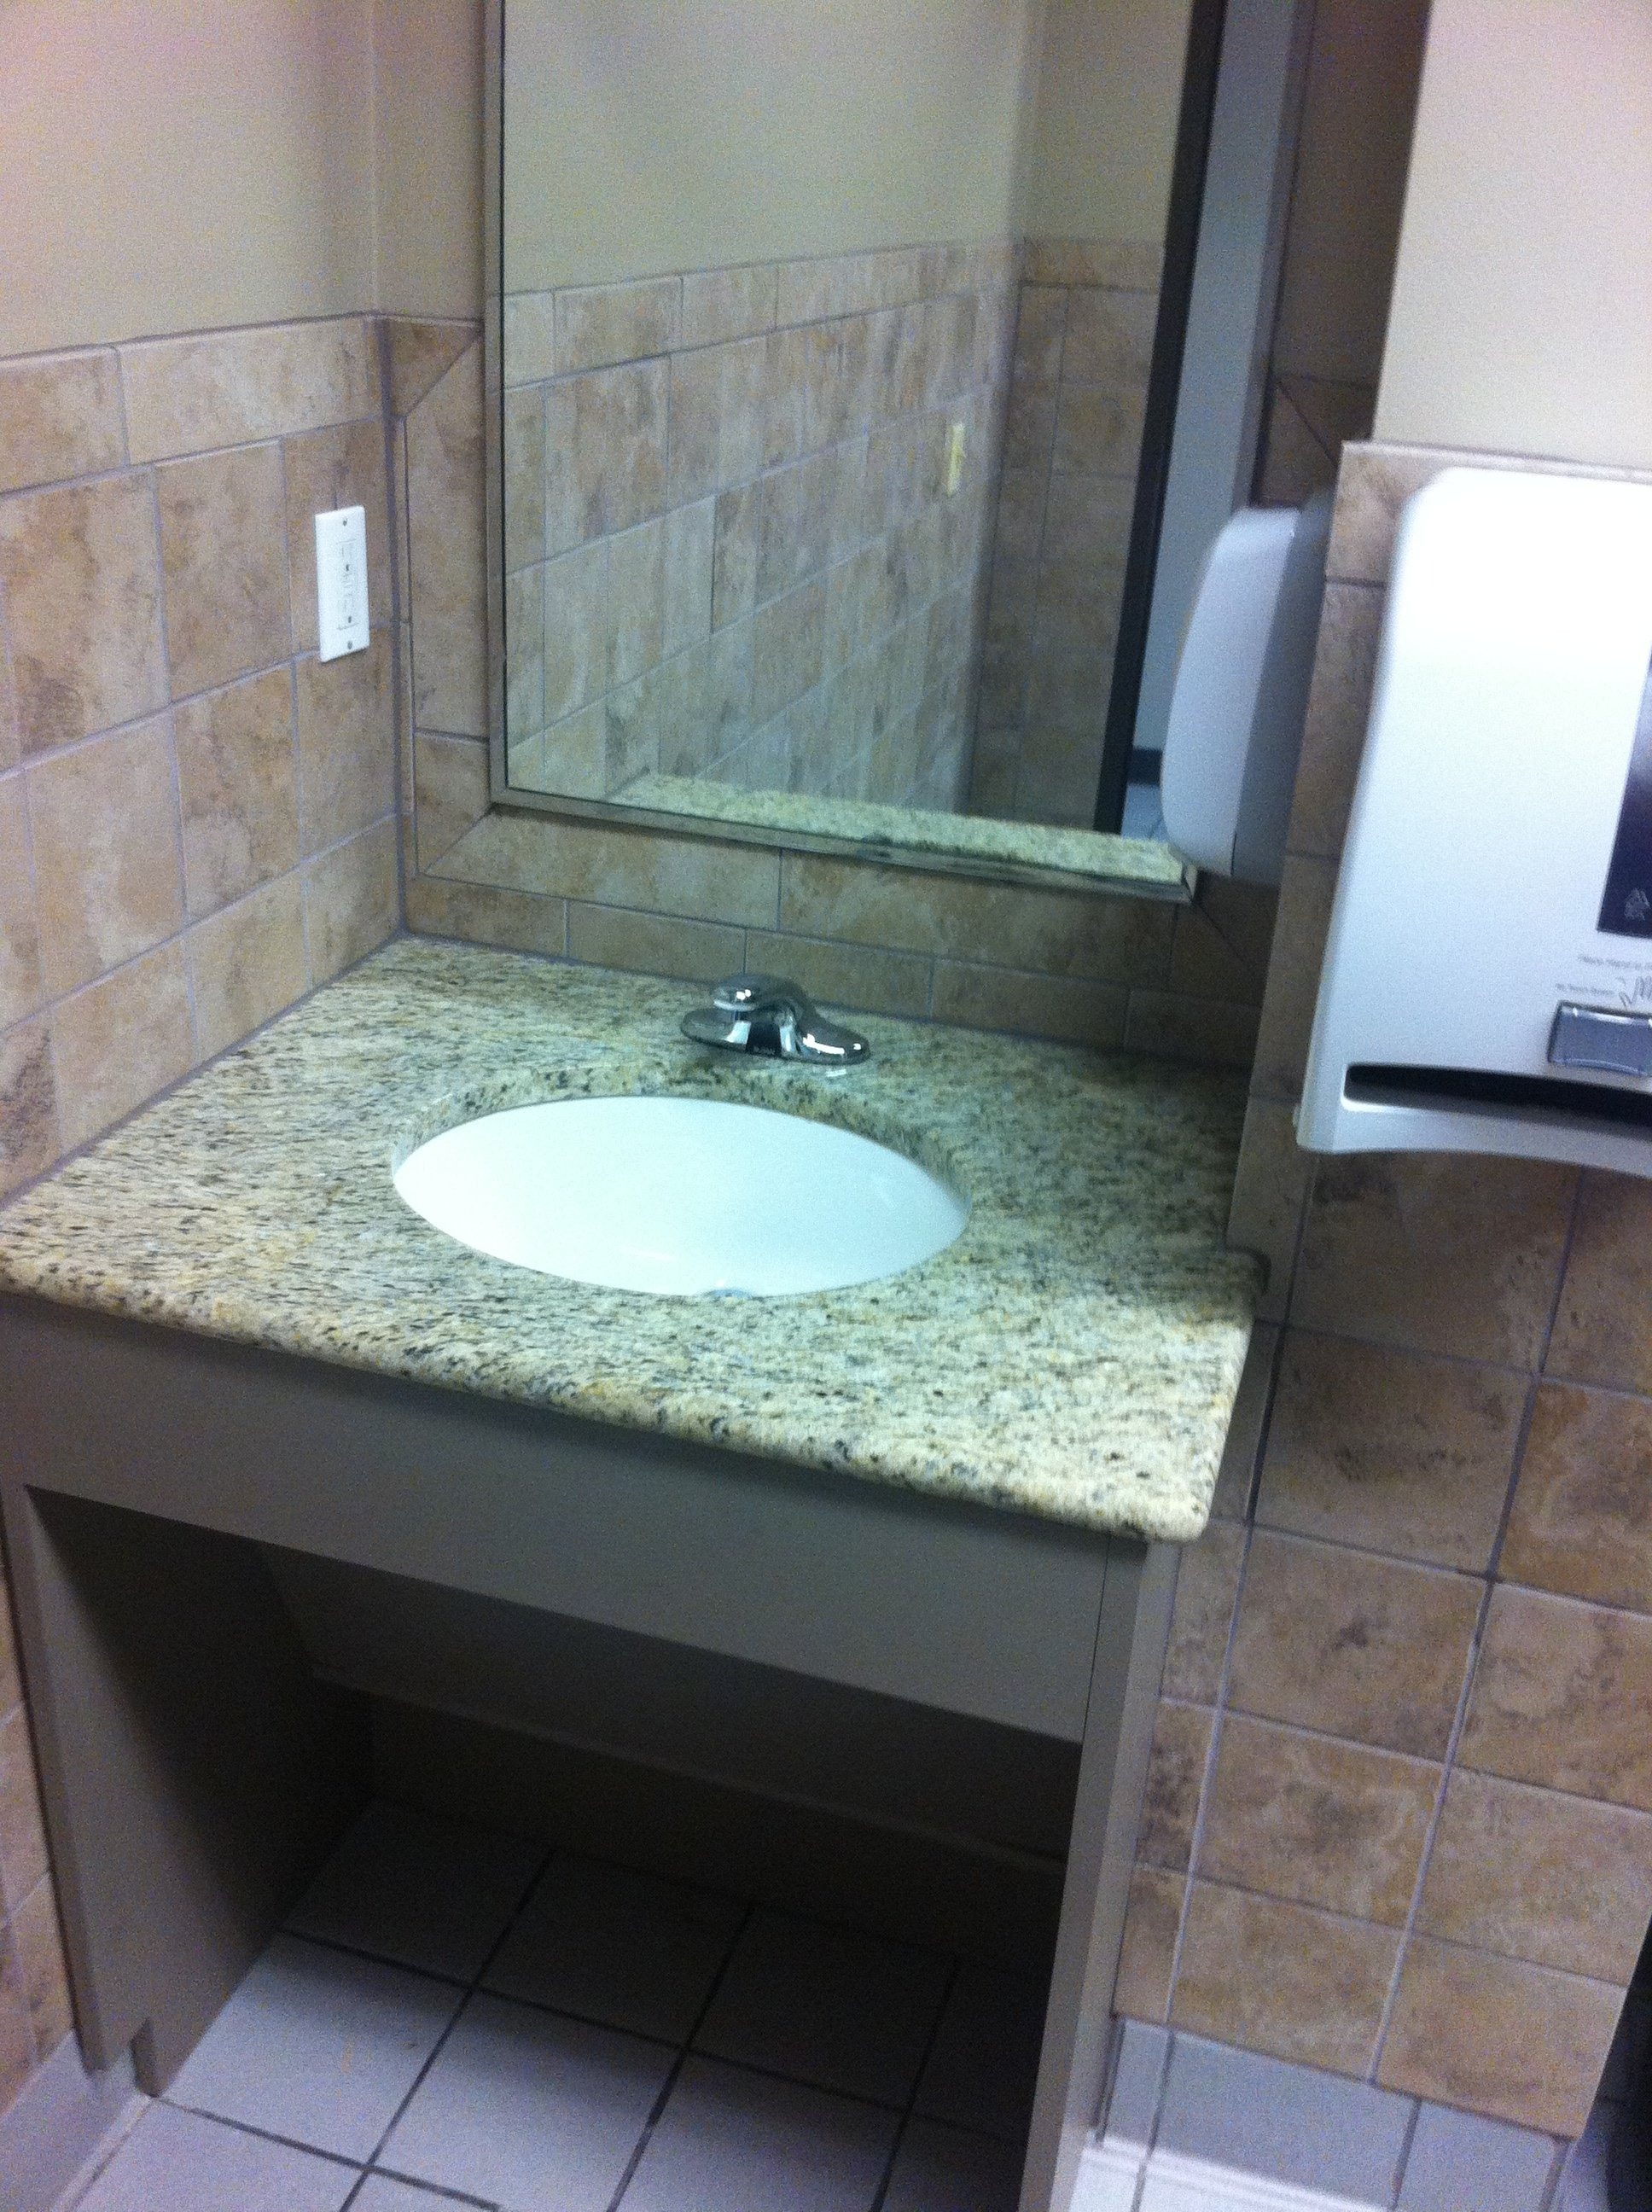 Commercial Bathroom Remodeling In Austin Texas - Bathroom remodeling austin texas